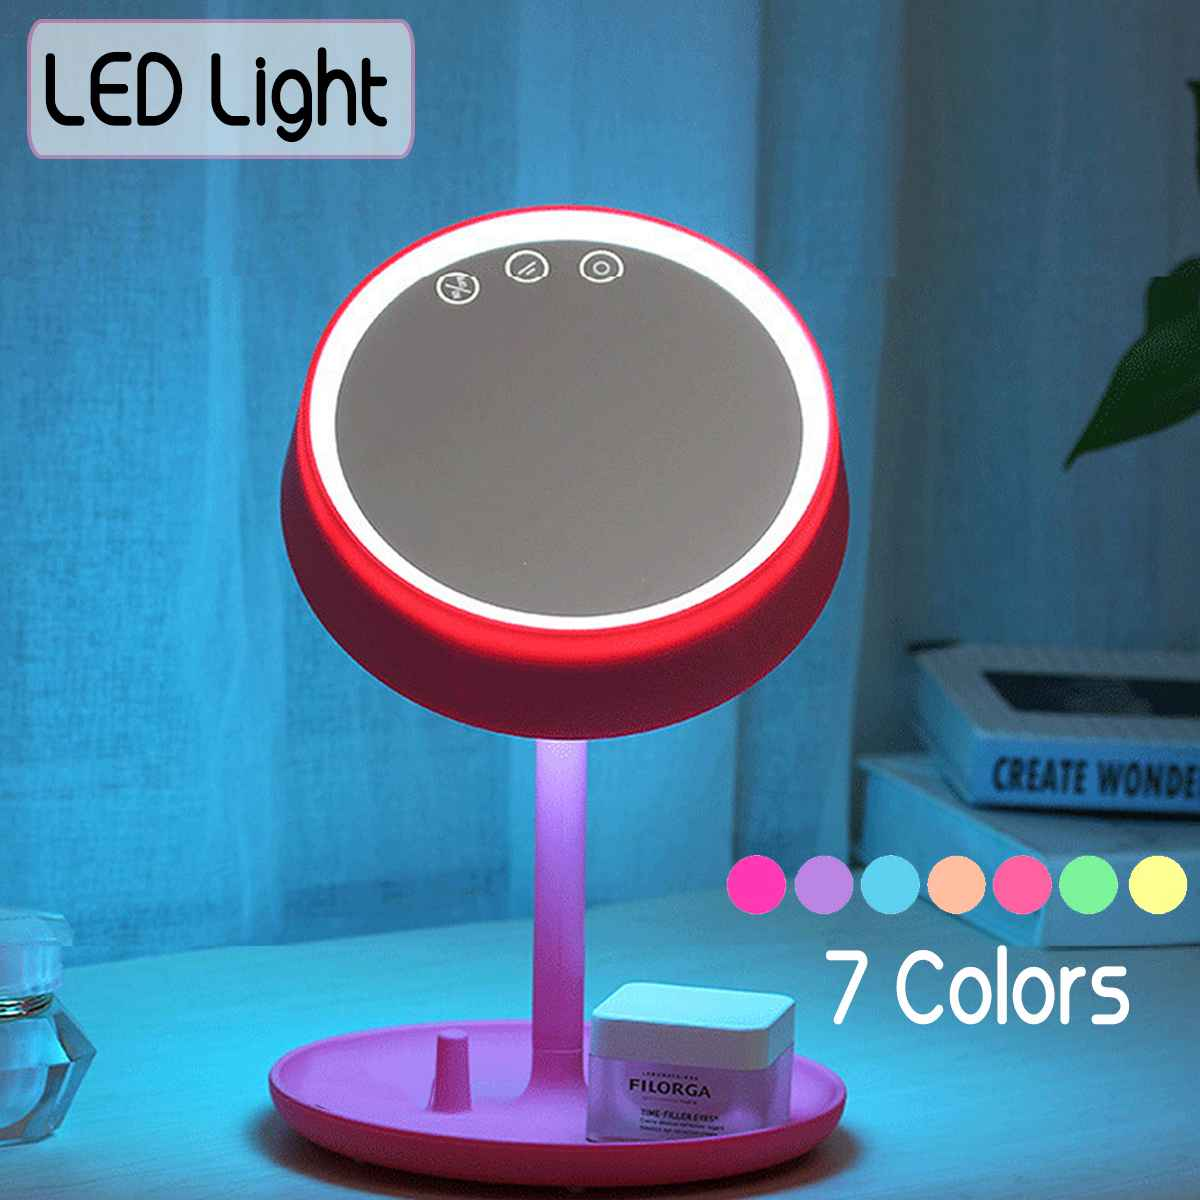 USB LED Lamp Touchs Control <font><b>7</b></font> Color Changing Table Night Light <font><b>4</b></font> In <font><b>1</b></font> Smart Beauty Makeup Mirror Wireless bluetooth Speaker image